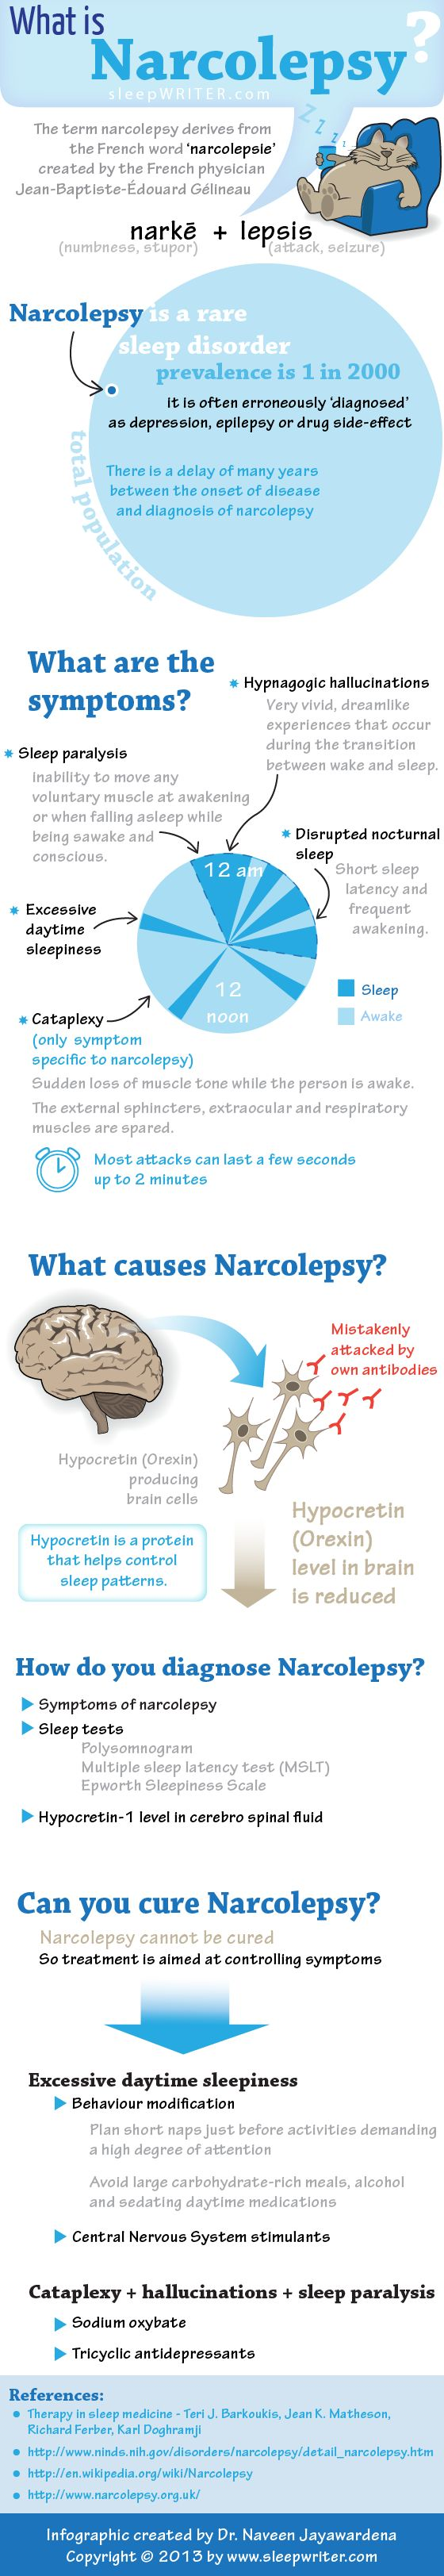 Narcolepsy is a sleep disorder